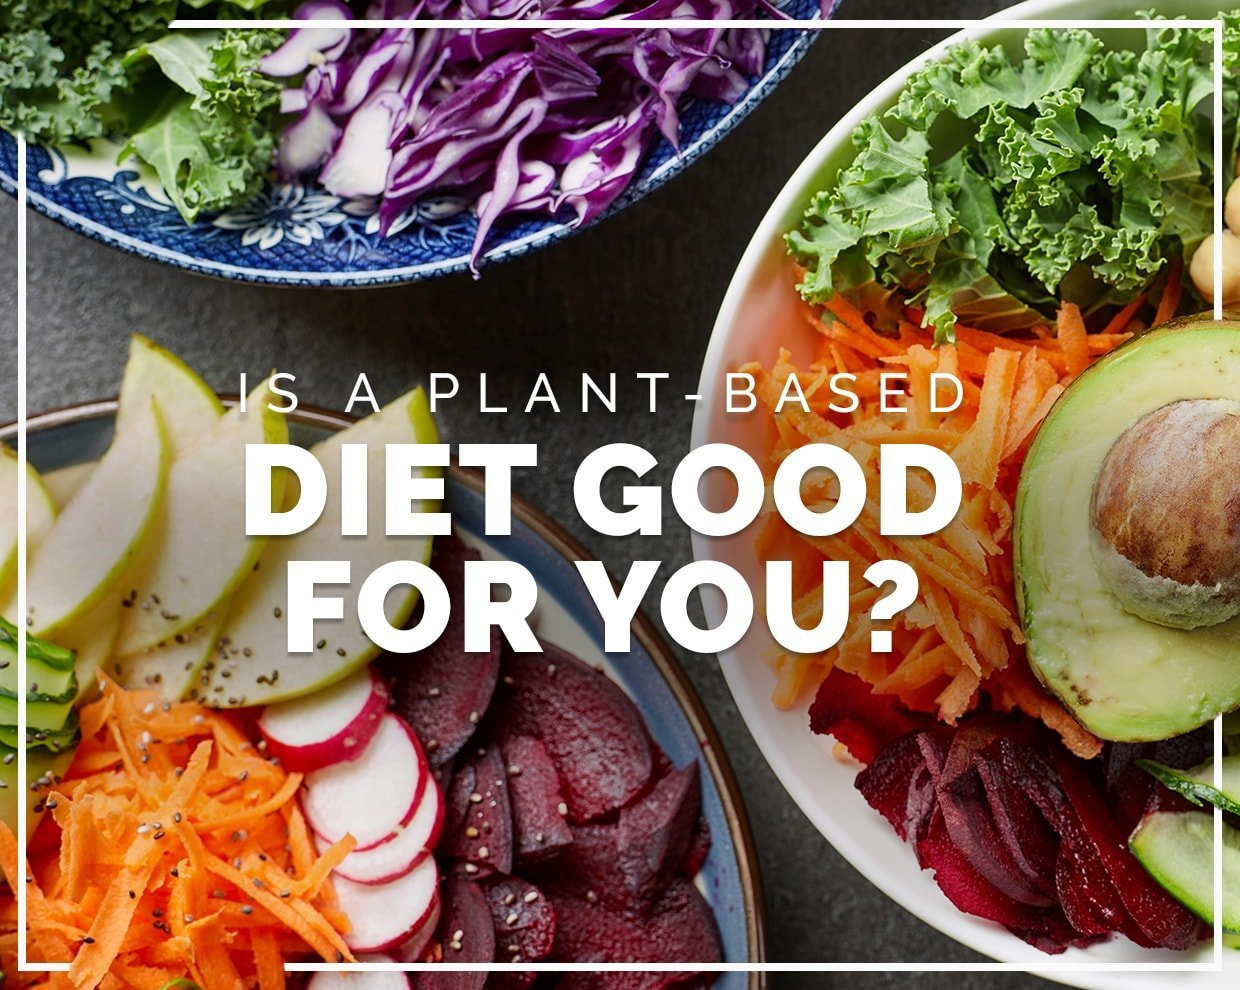 Is a plant-based diet good for you?